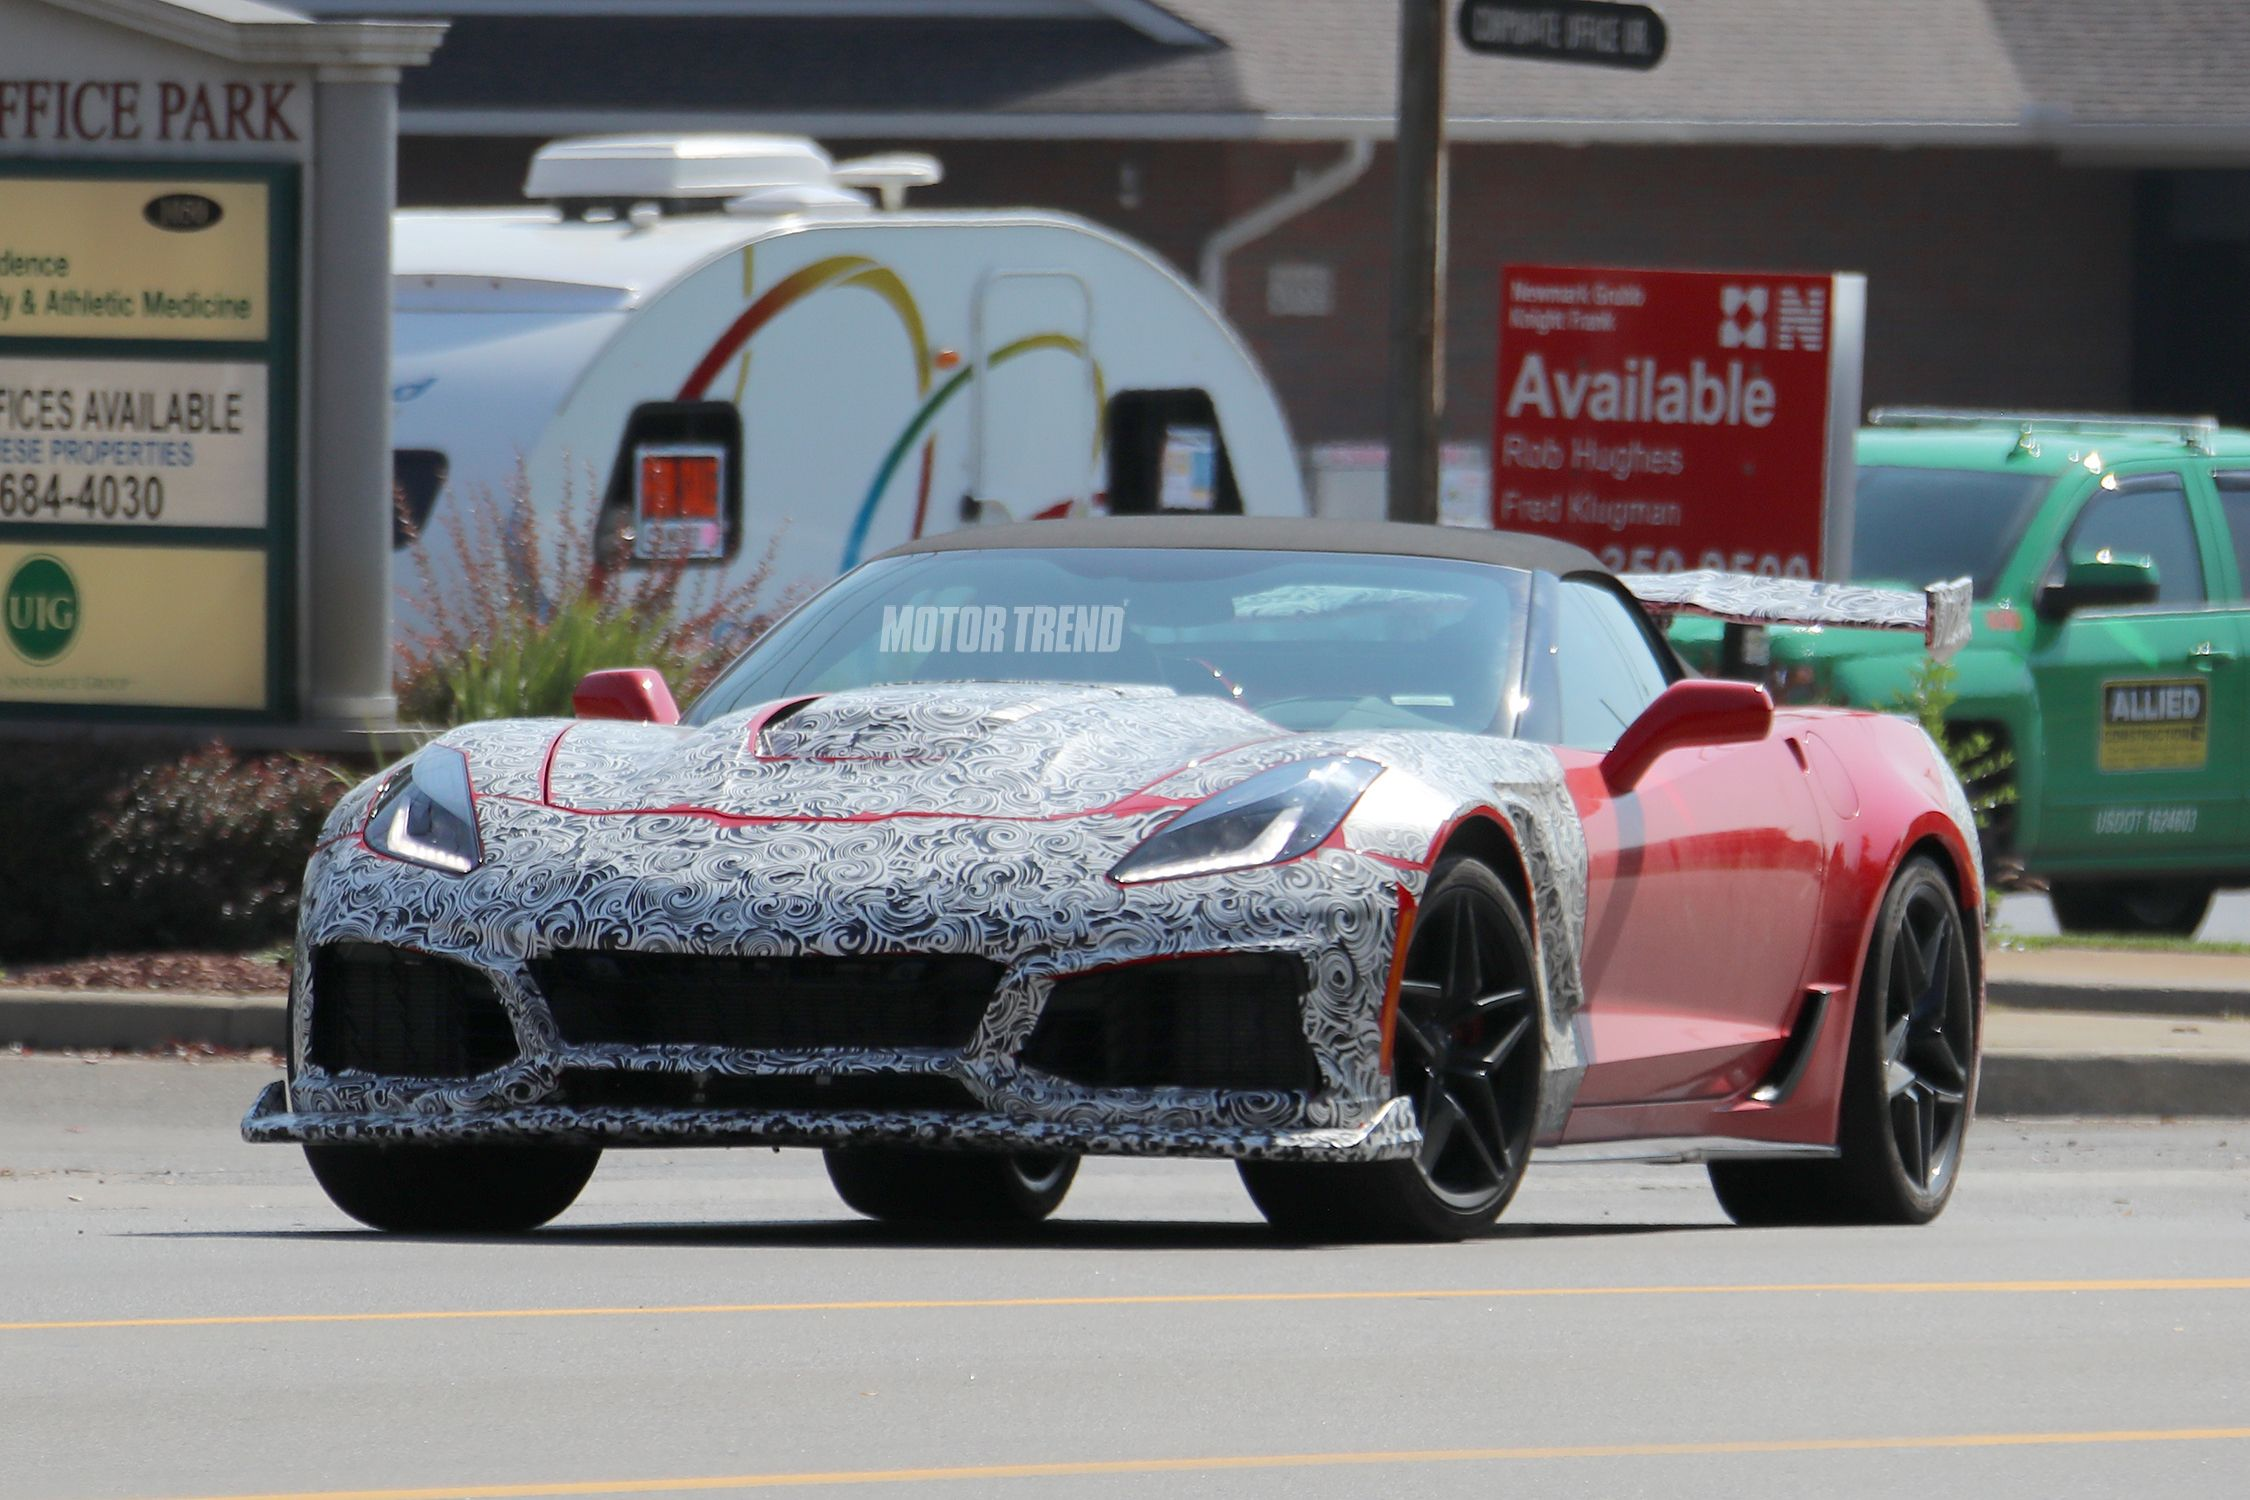 Spied 2018 Corvette Zr1 Caught With An Automatic Transmission